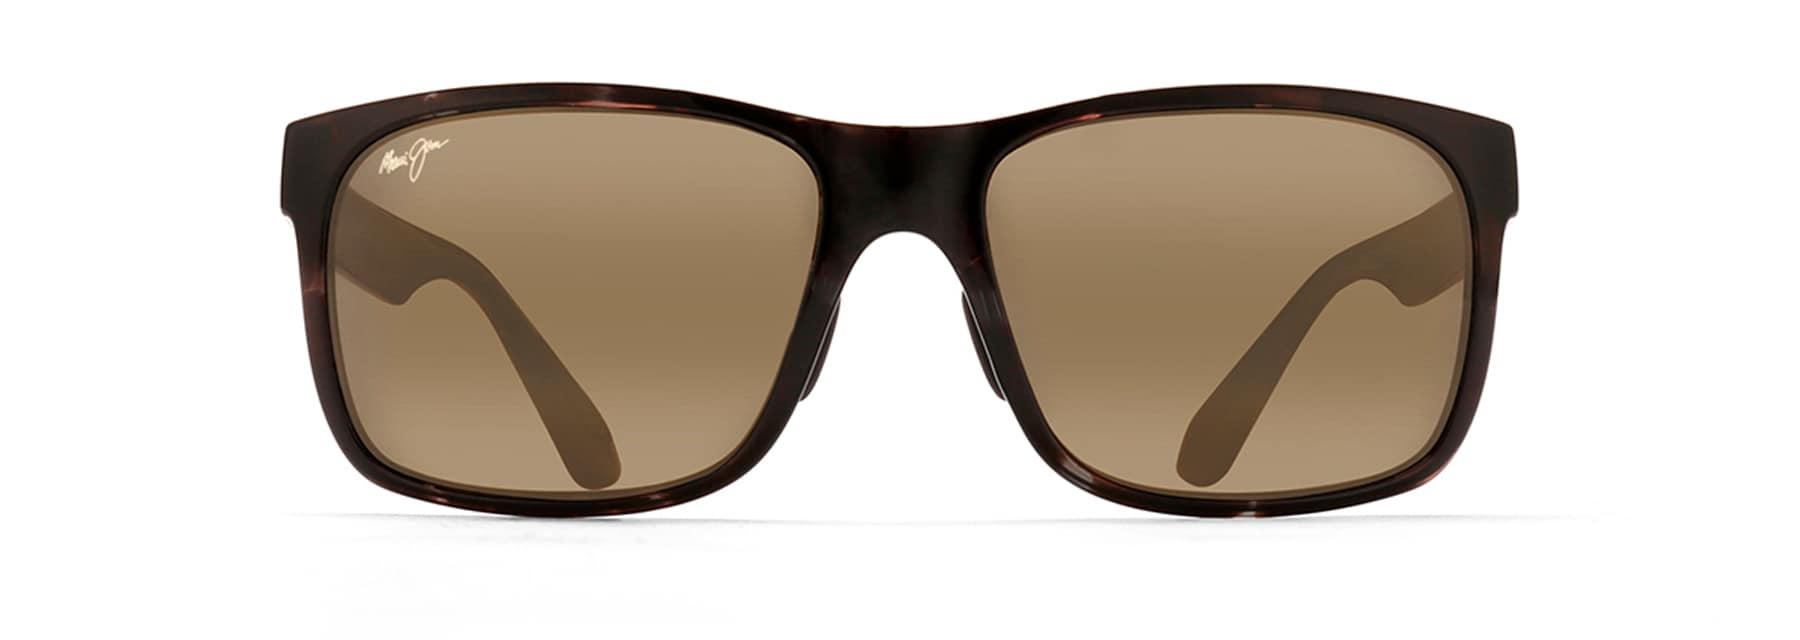 4fbaf9f11f23 Red Sands Polarised Sunglasses | Maui Jim®